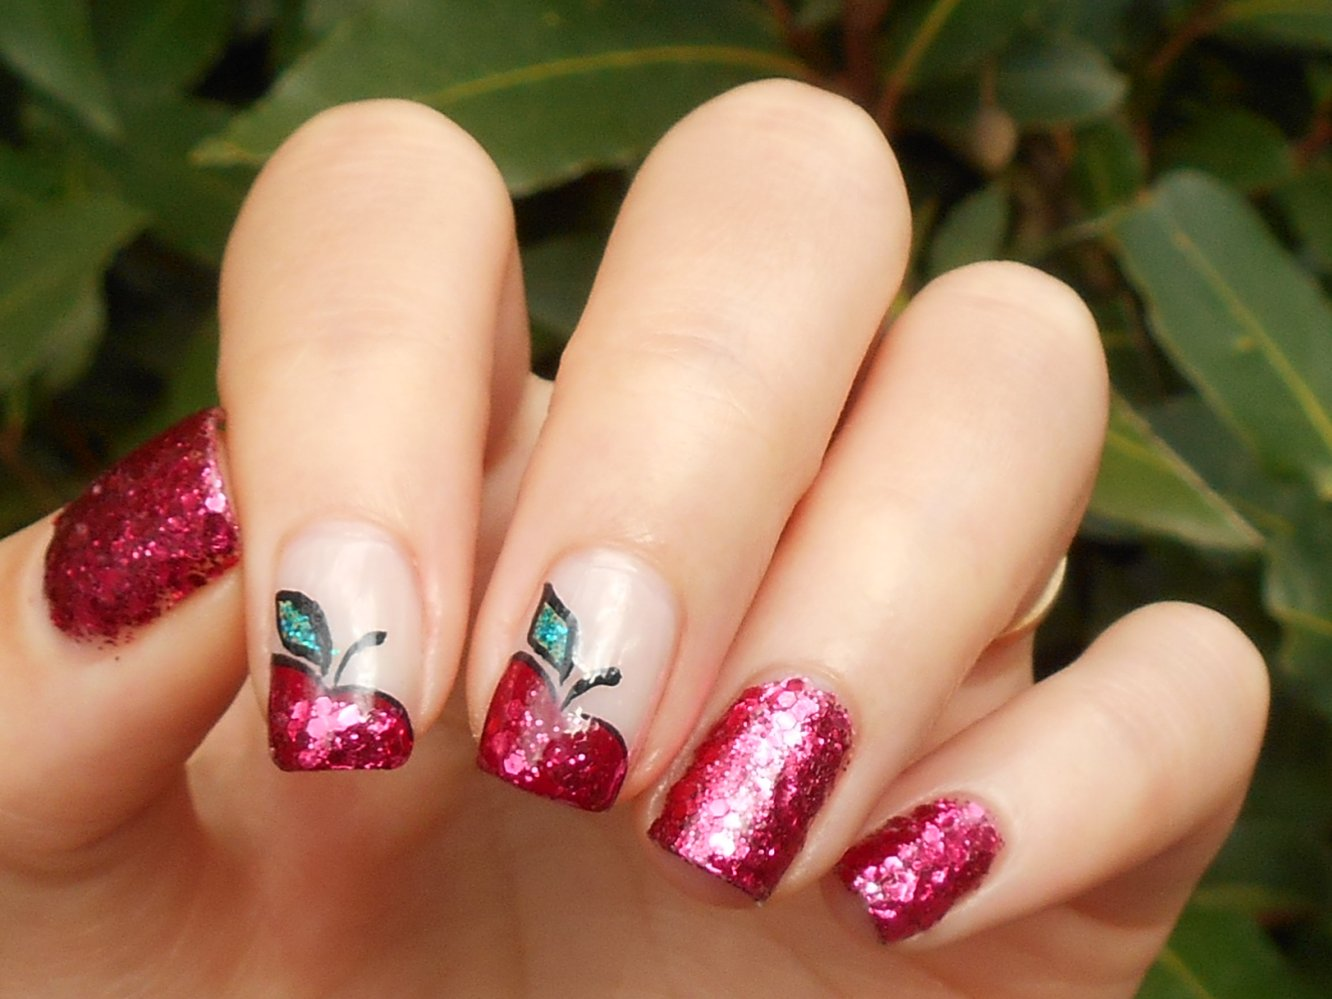 Ongles Vernis Vernis Facile Ongles Dessin kOP8wn0X